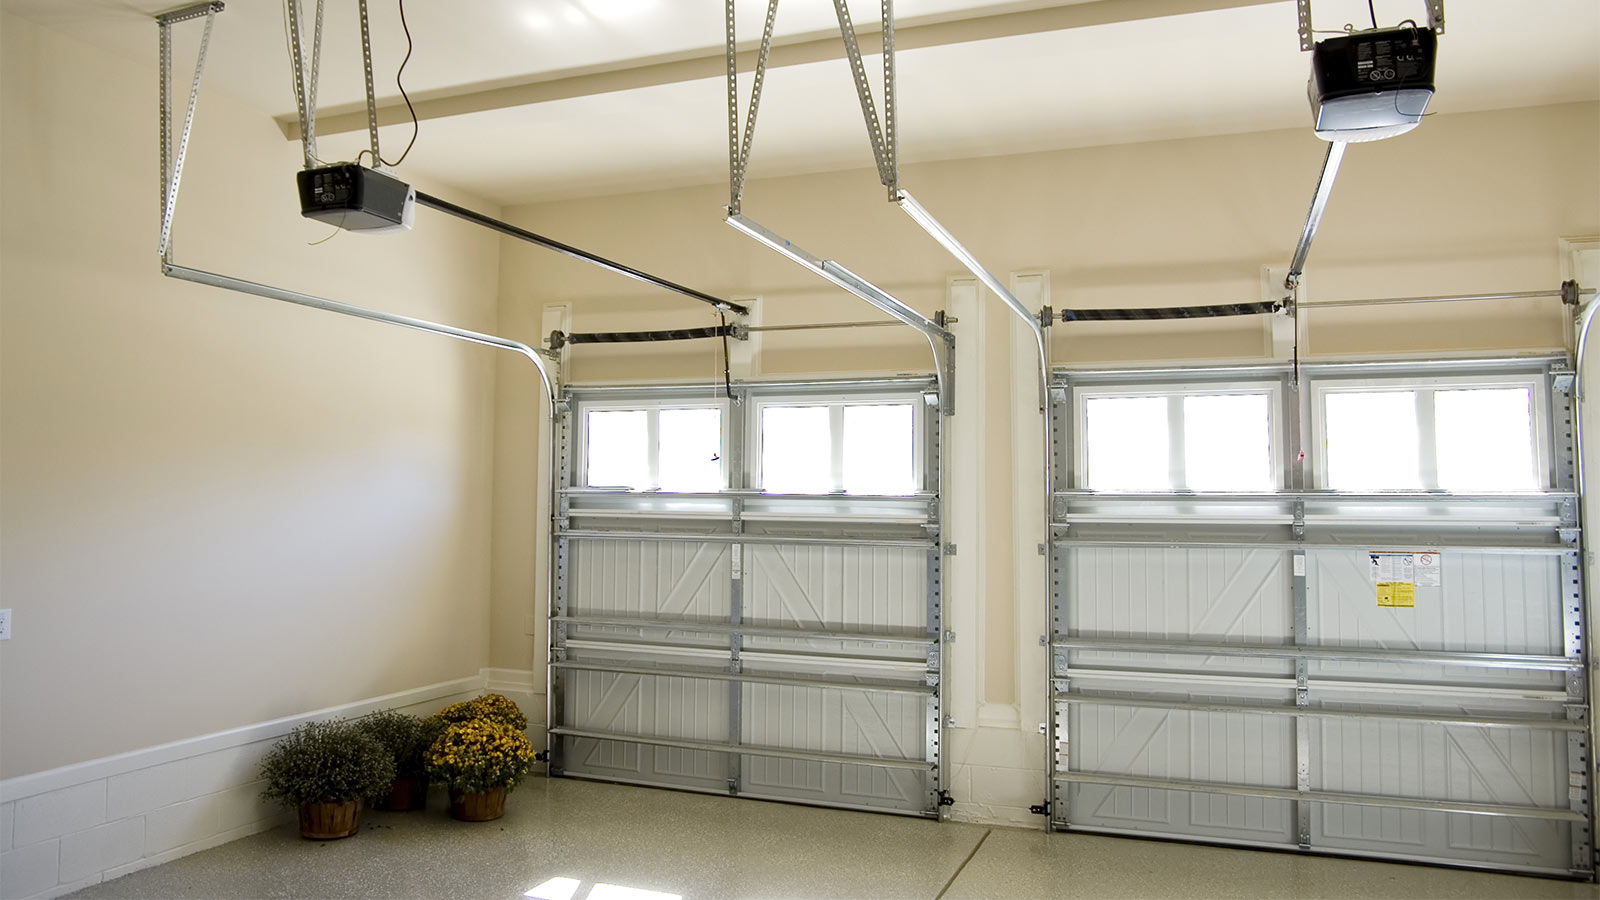 Sectional Garage Doors from Security Gates Hampshire suppliers.